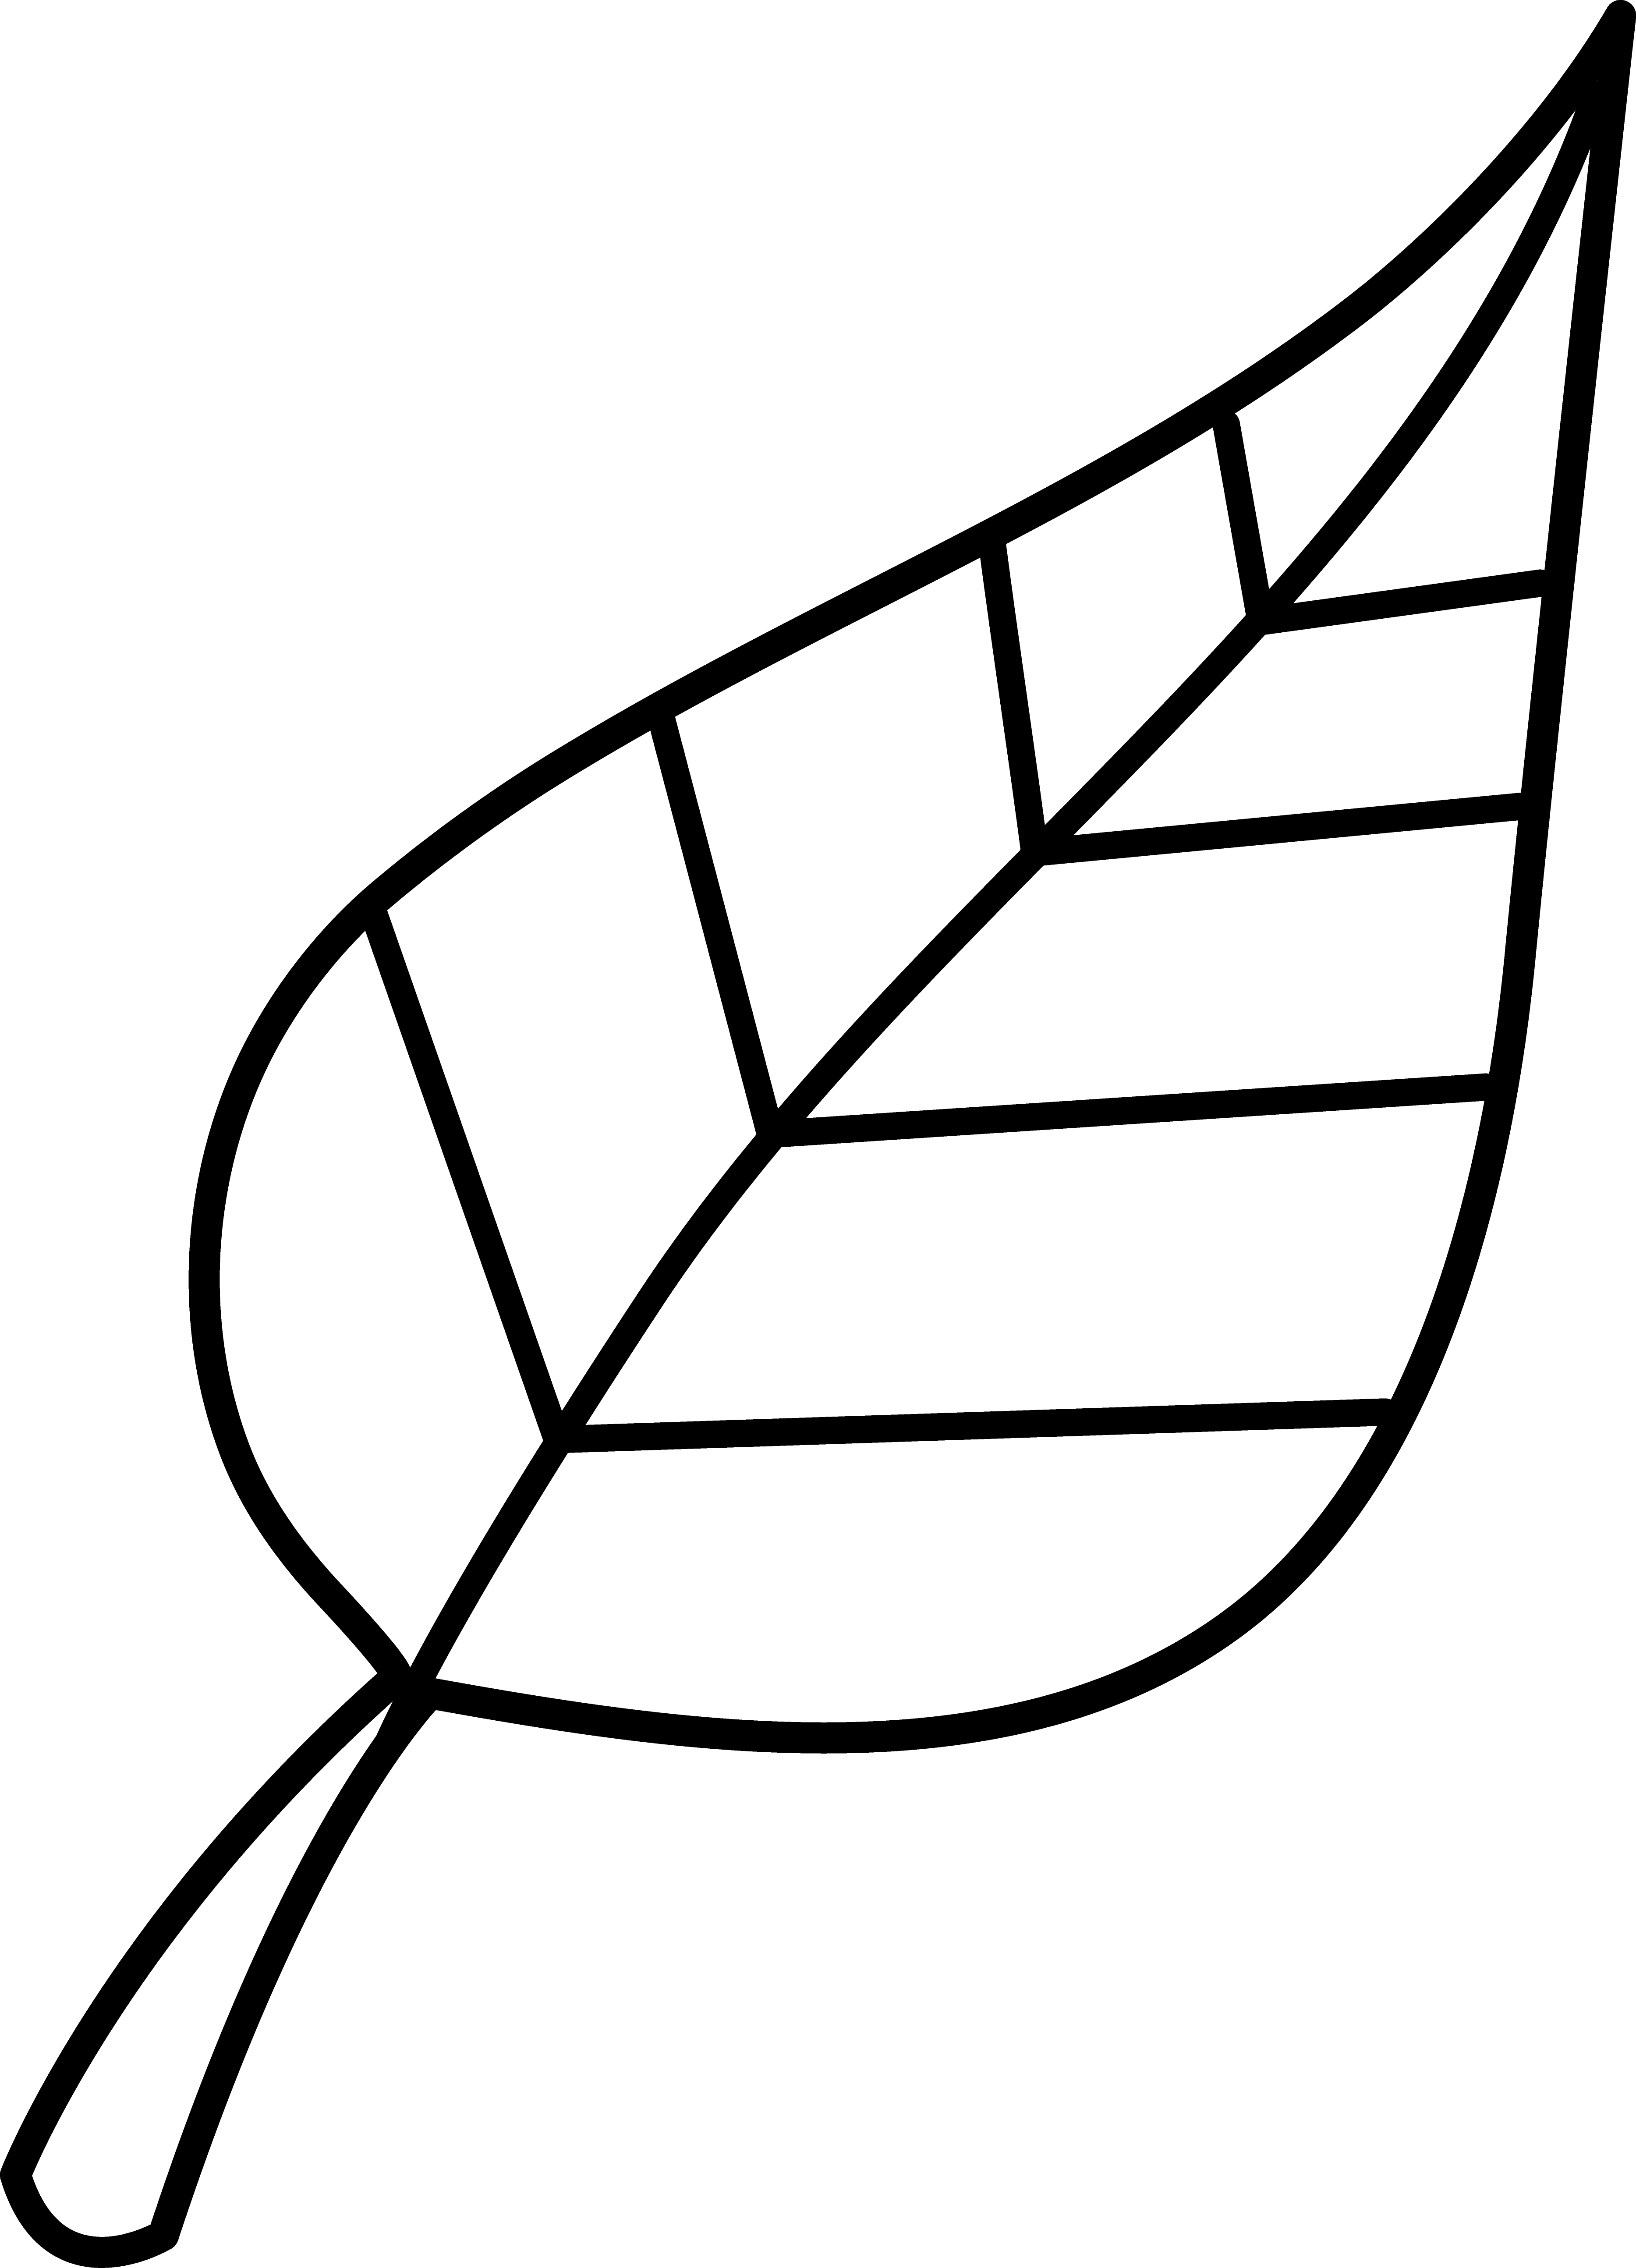 Black And White Leaf Clipart - Clipart Suggest